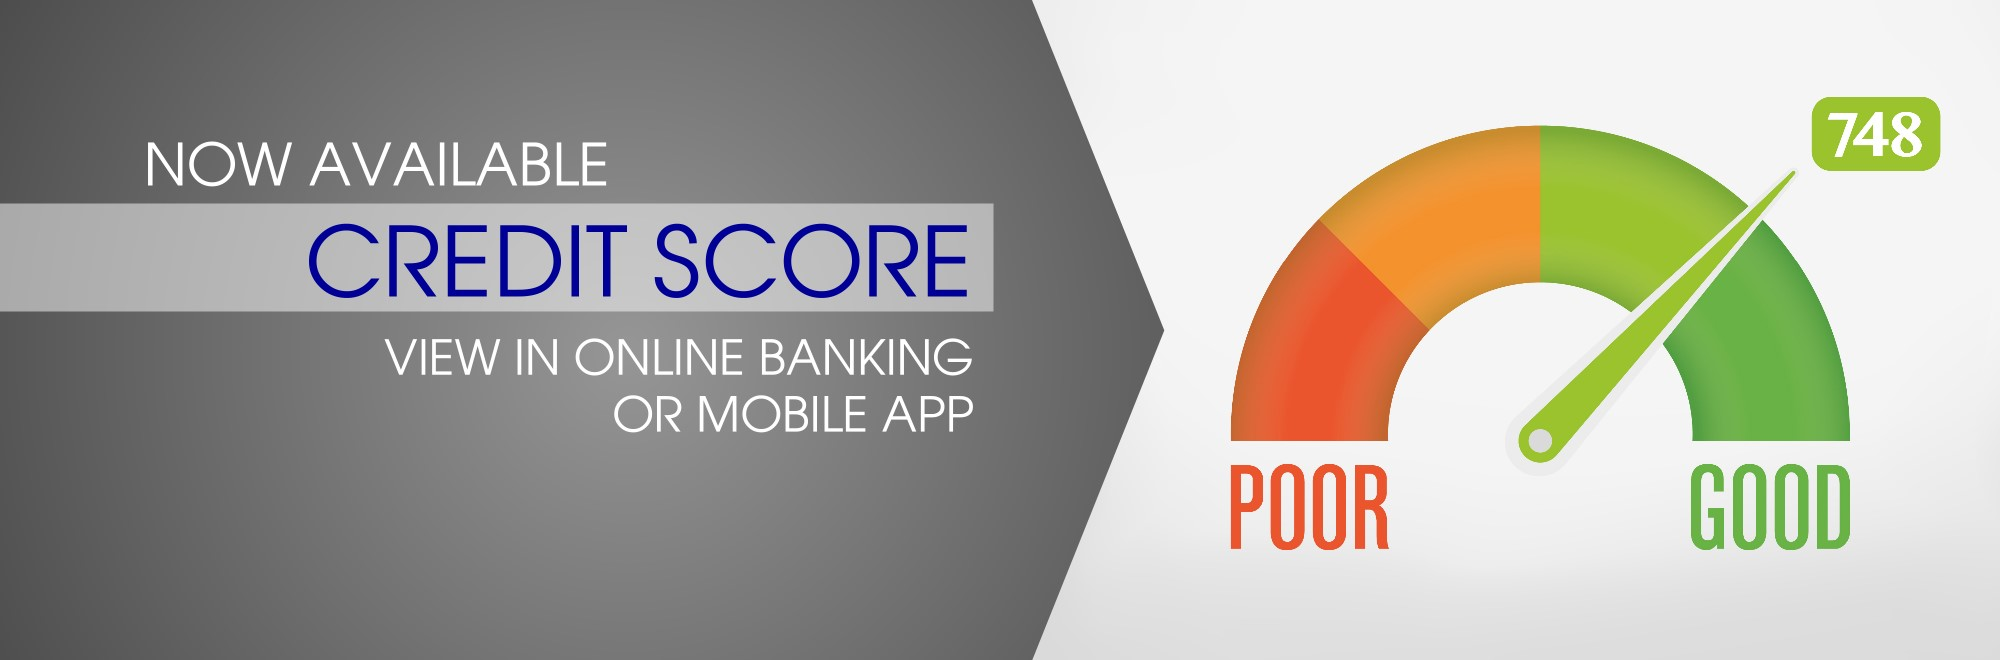 Now Available Credit Score View in Online Banking or Mobile App